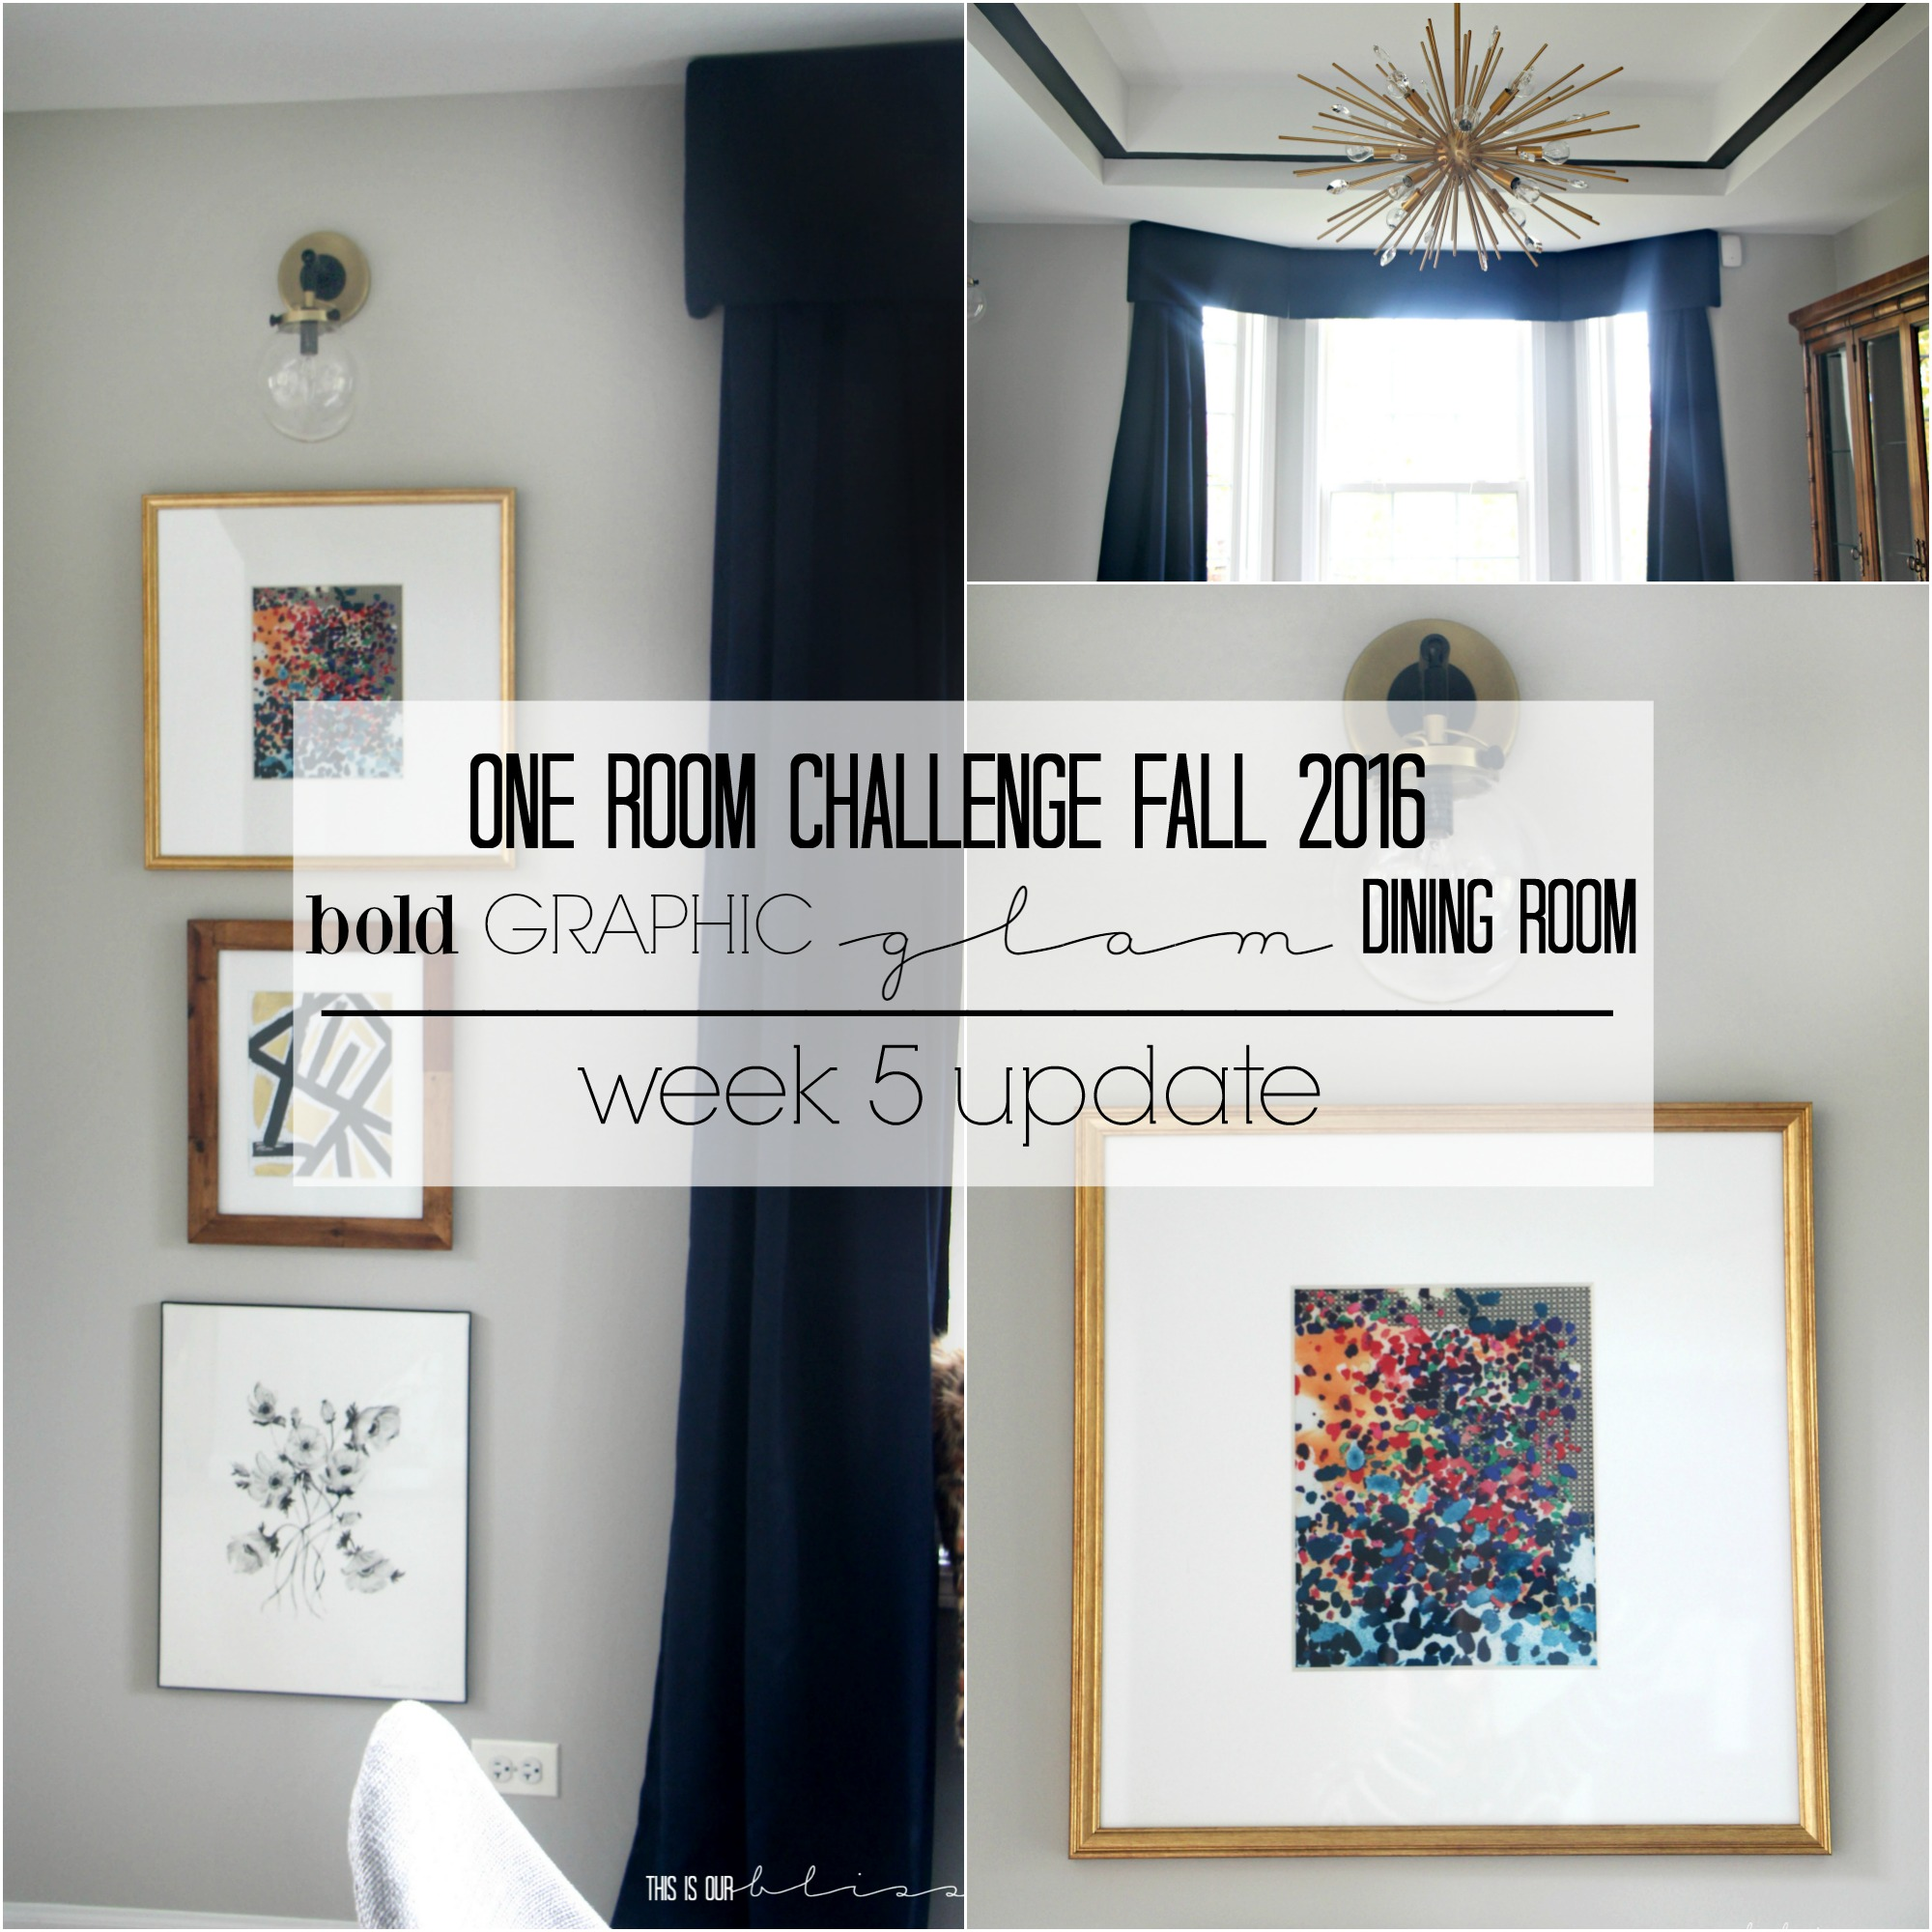 Bold Graphic Glam Dining Room   One Room Challenge Fall 2016   This is our Bliss   www.thisisourbliss.com